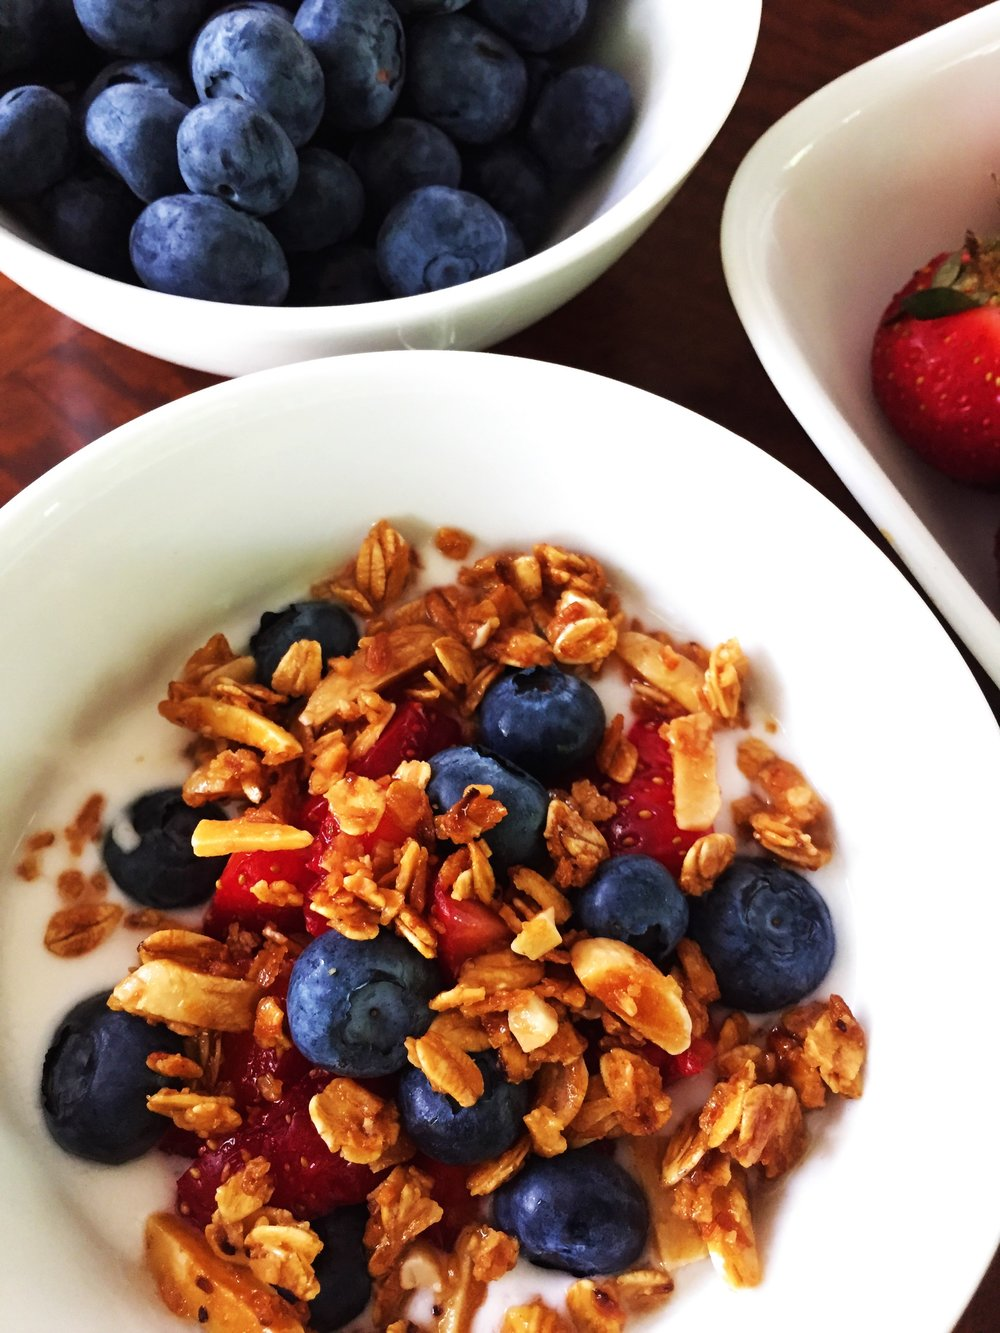 Coconut-Almond Granola over berries and yogurt in the Adventure Kitchen.